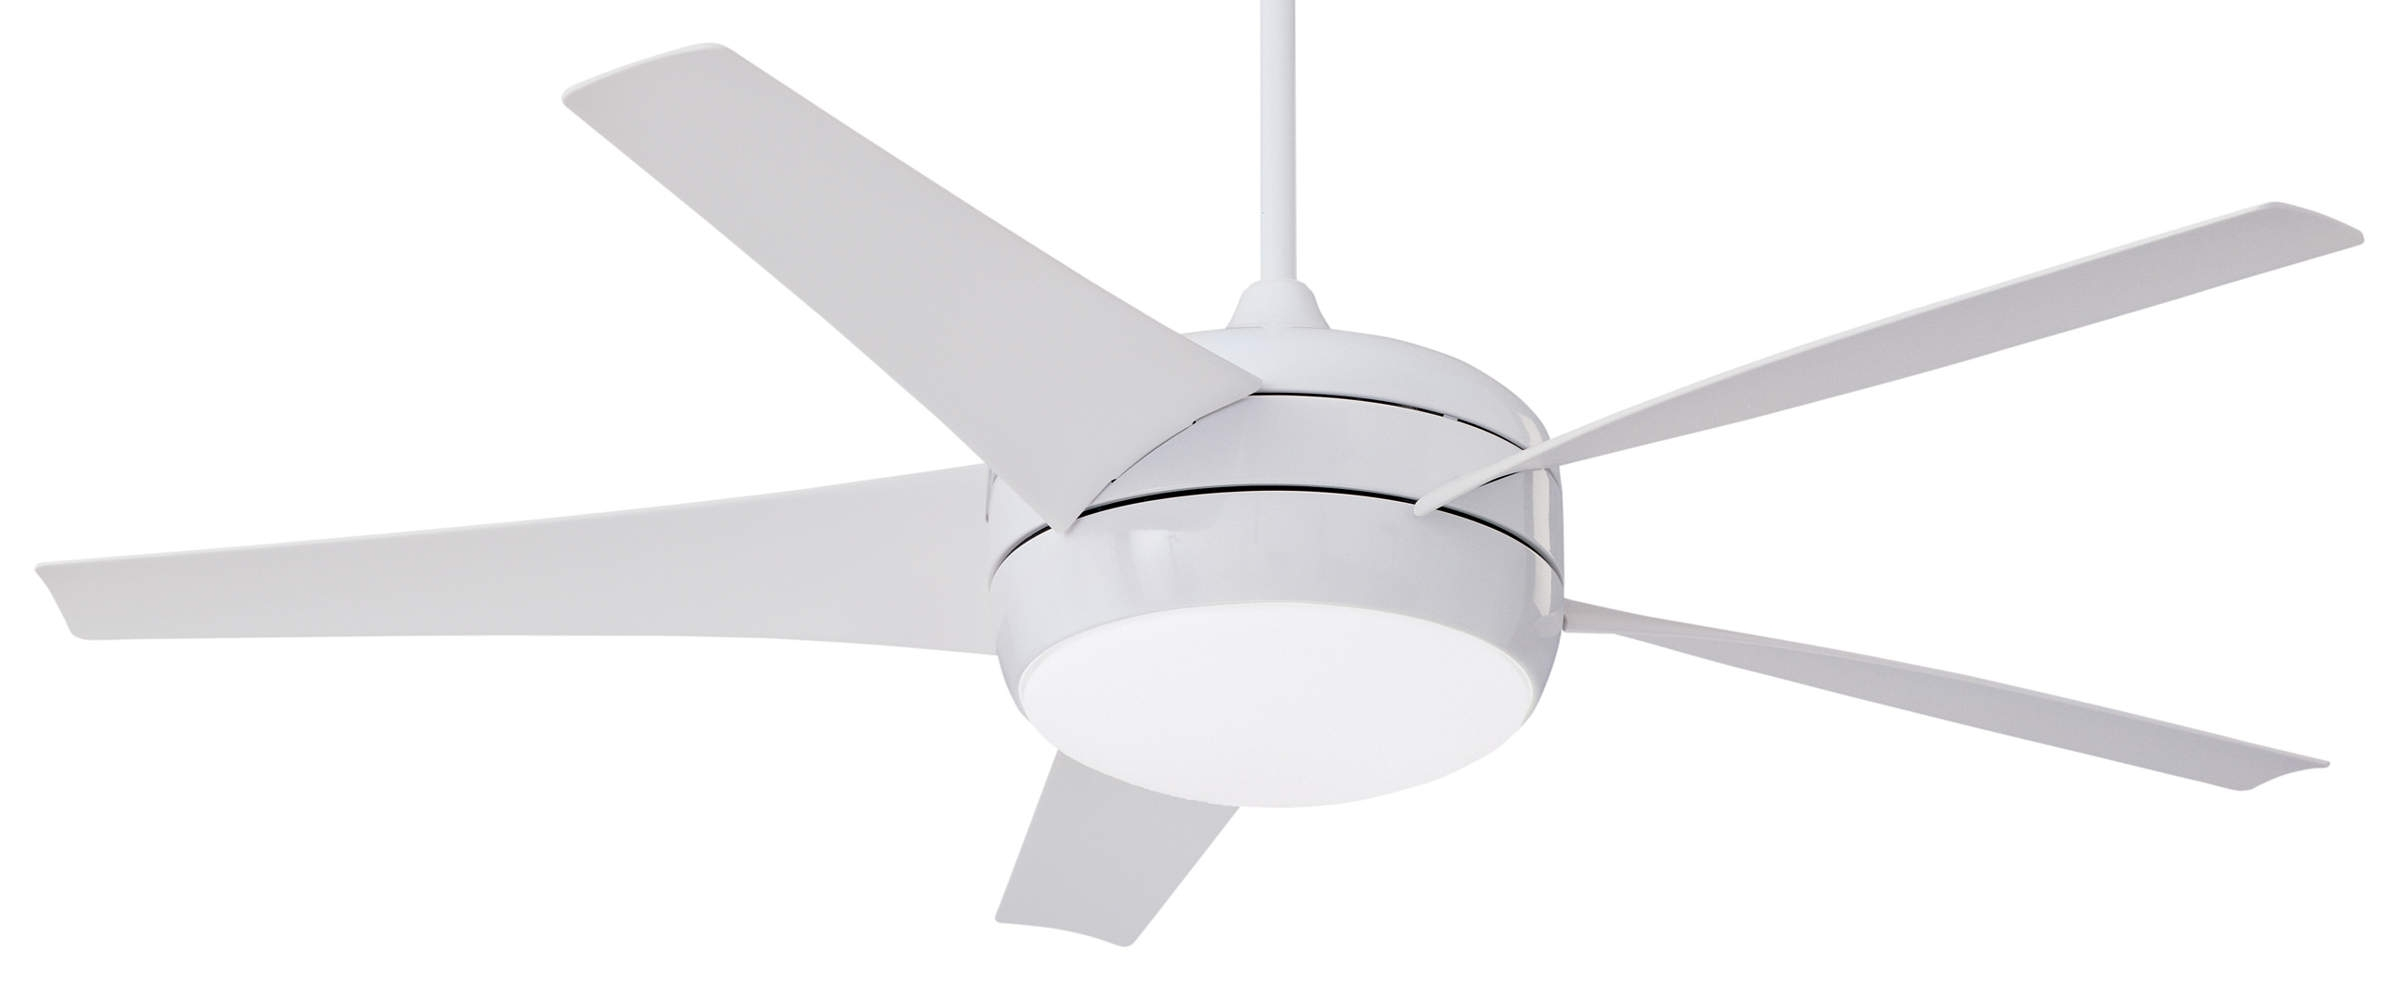 Emerson Midway Eco Dc Motor Ceiling Fan Cfww In Gloss White With Within Popular Low Profile Outdoor Ceiling Fans With Lights (Gallery 19 of 20)